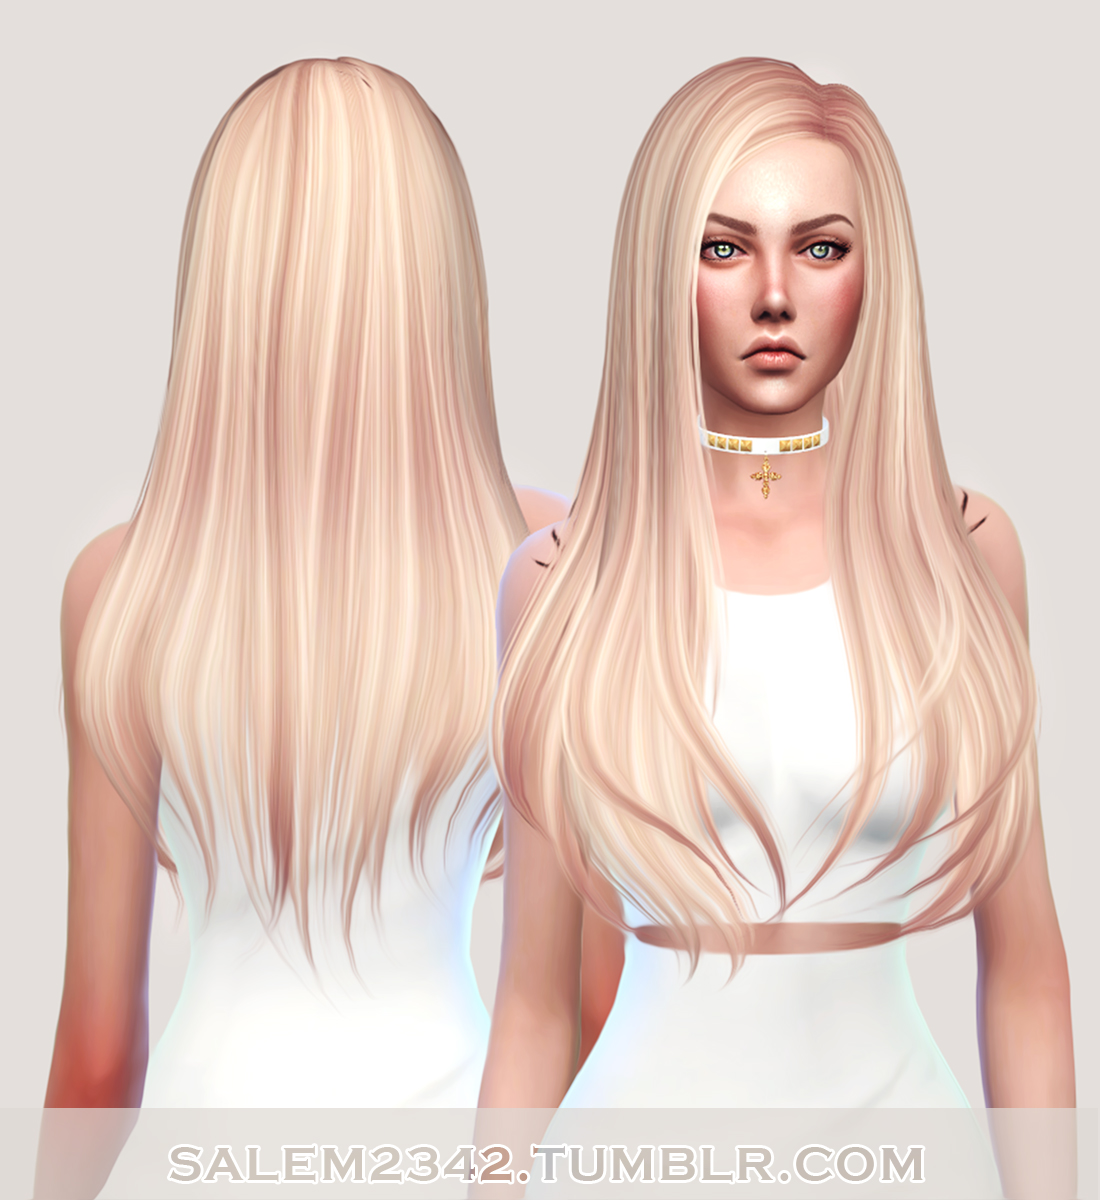 Sims 4 Hairstyles: Salem2342: Butterfly`s 145 Hair Retextured